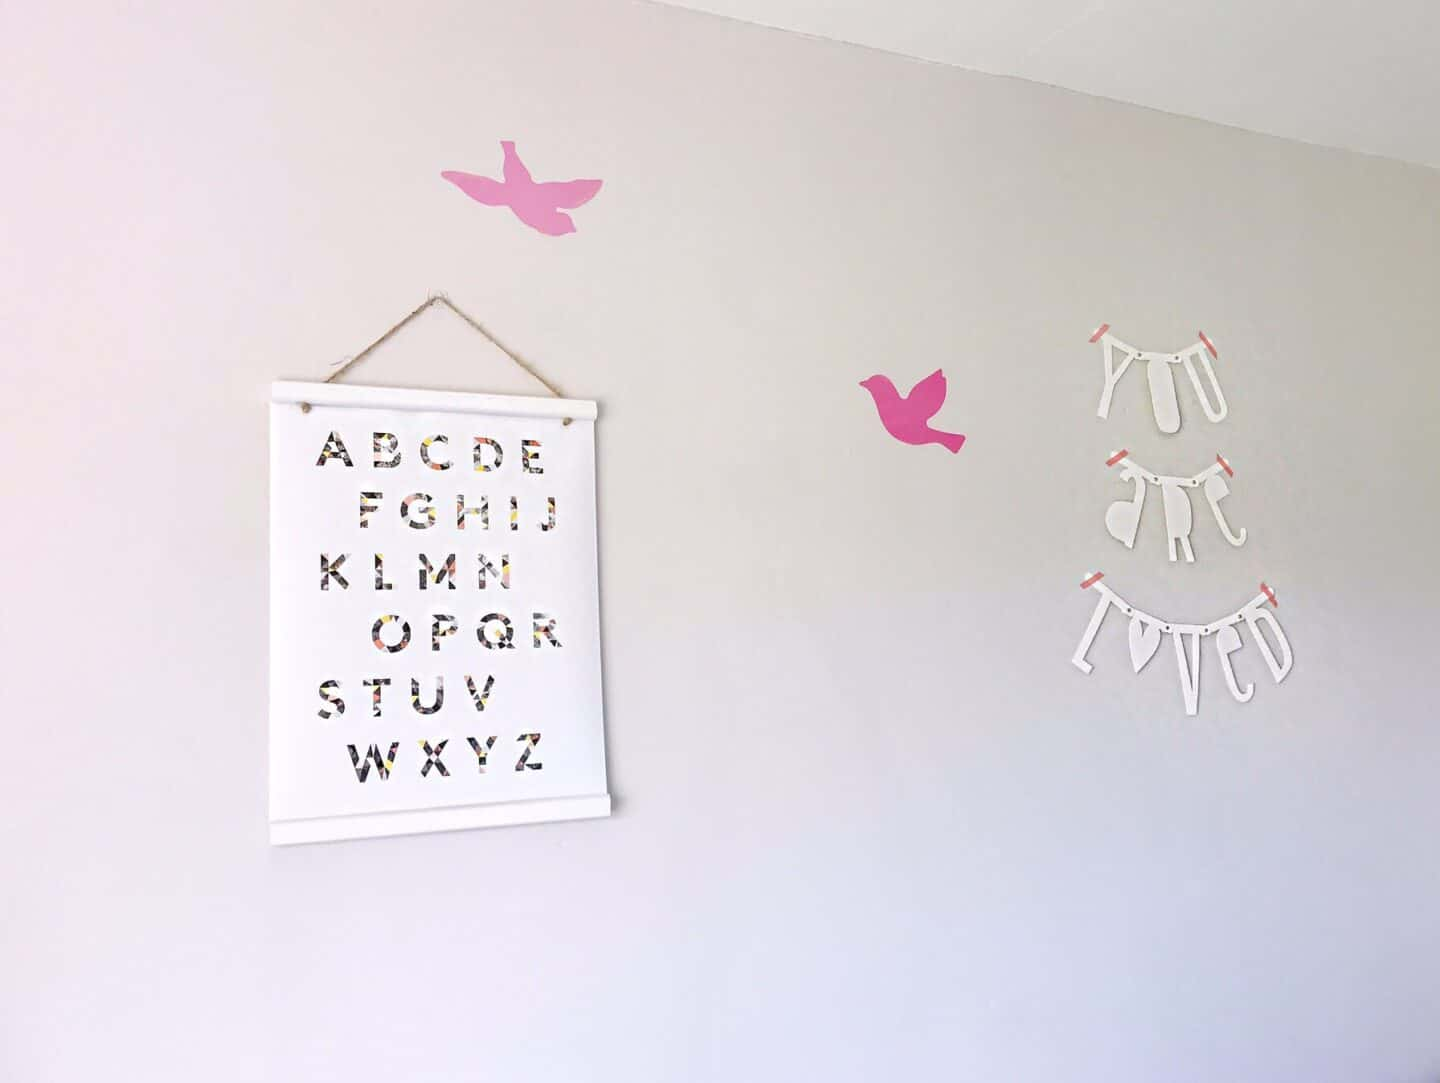 Alphabet poster and pink bird stikers